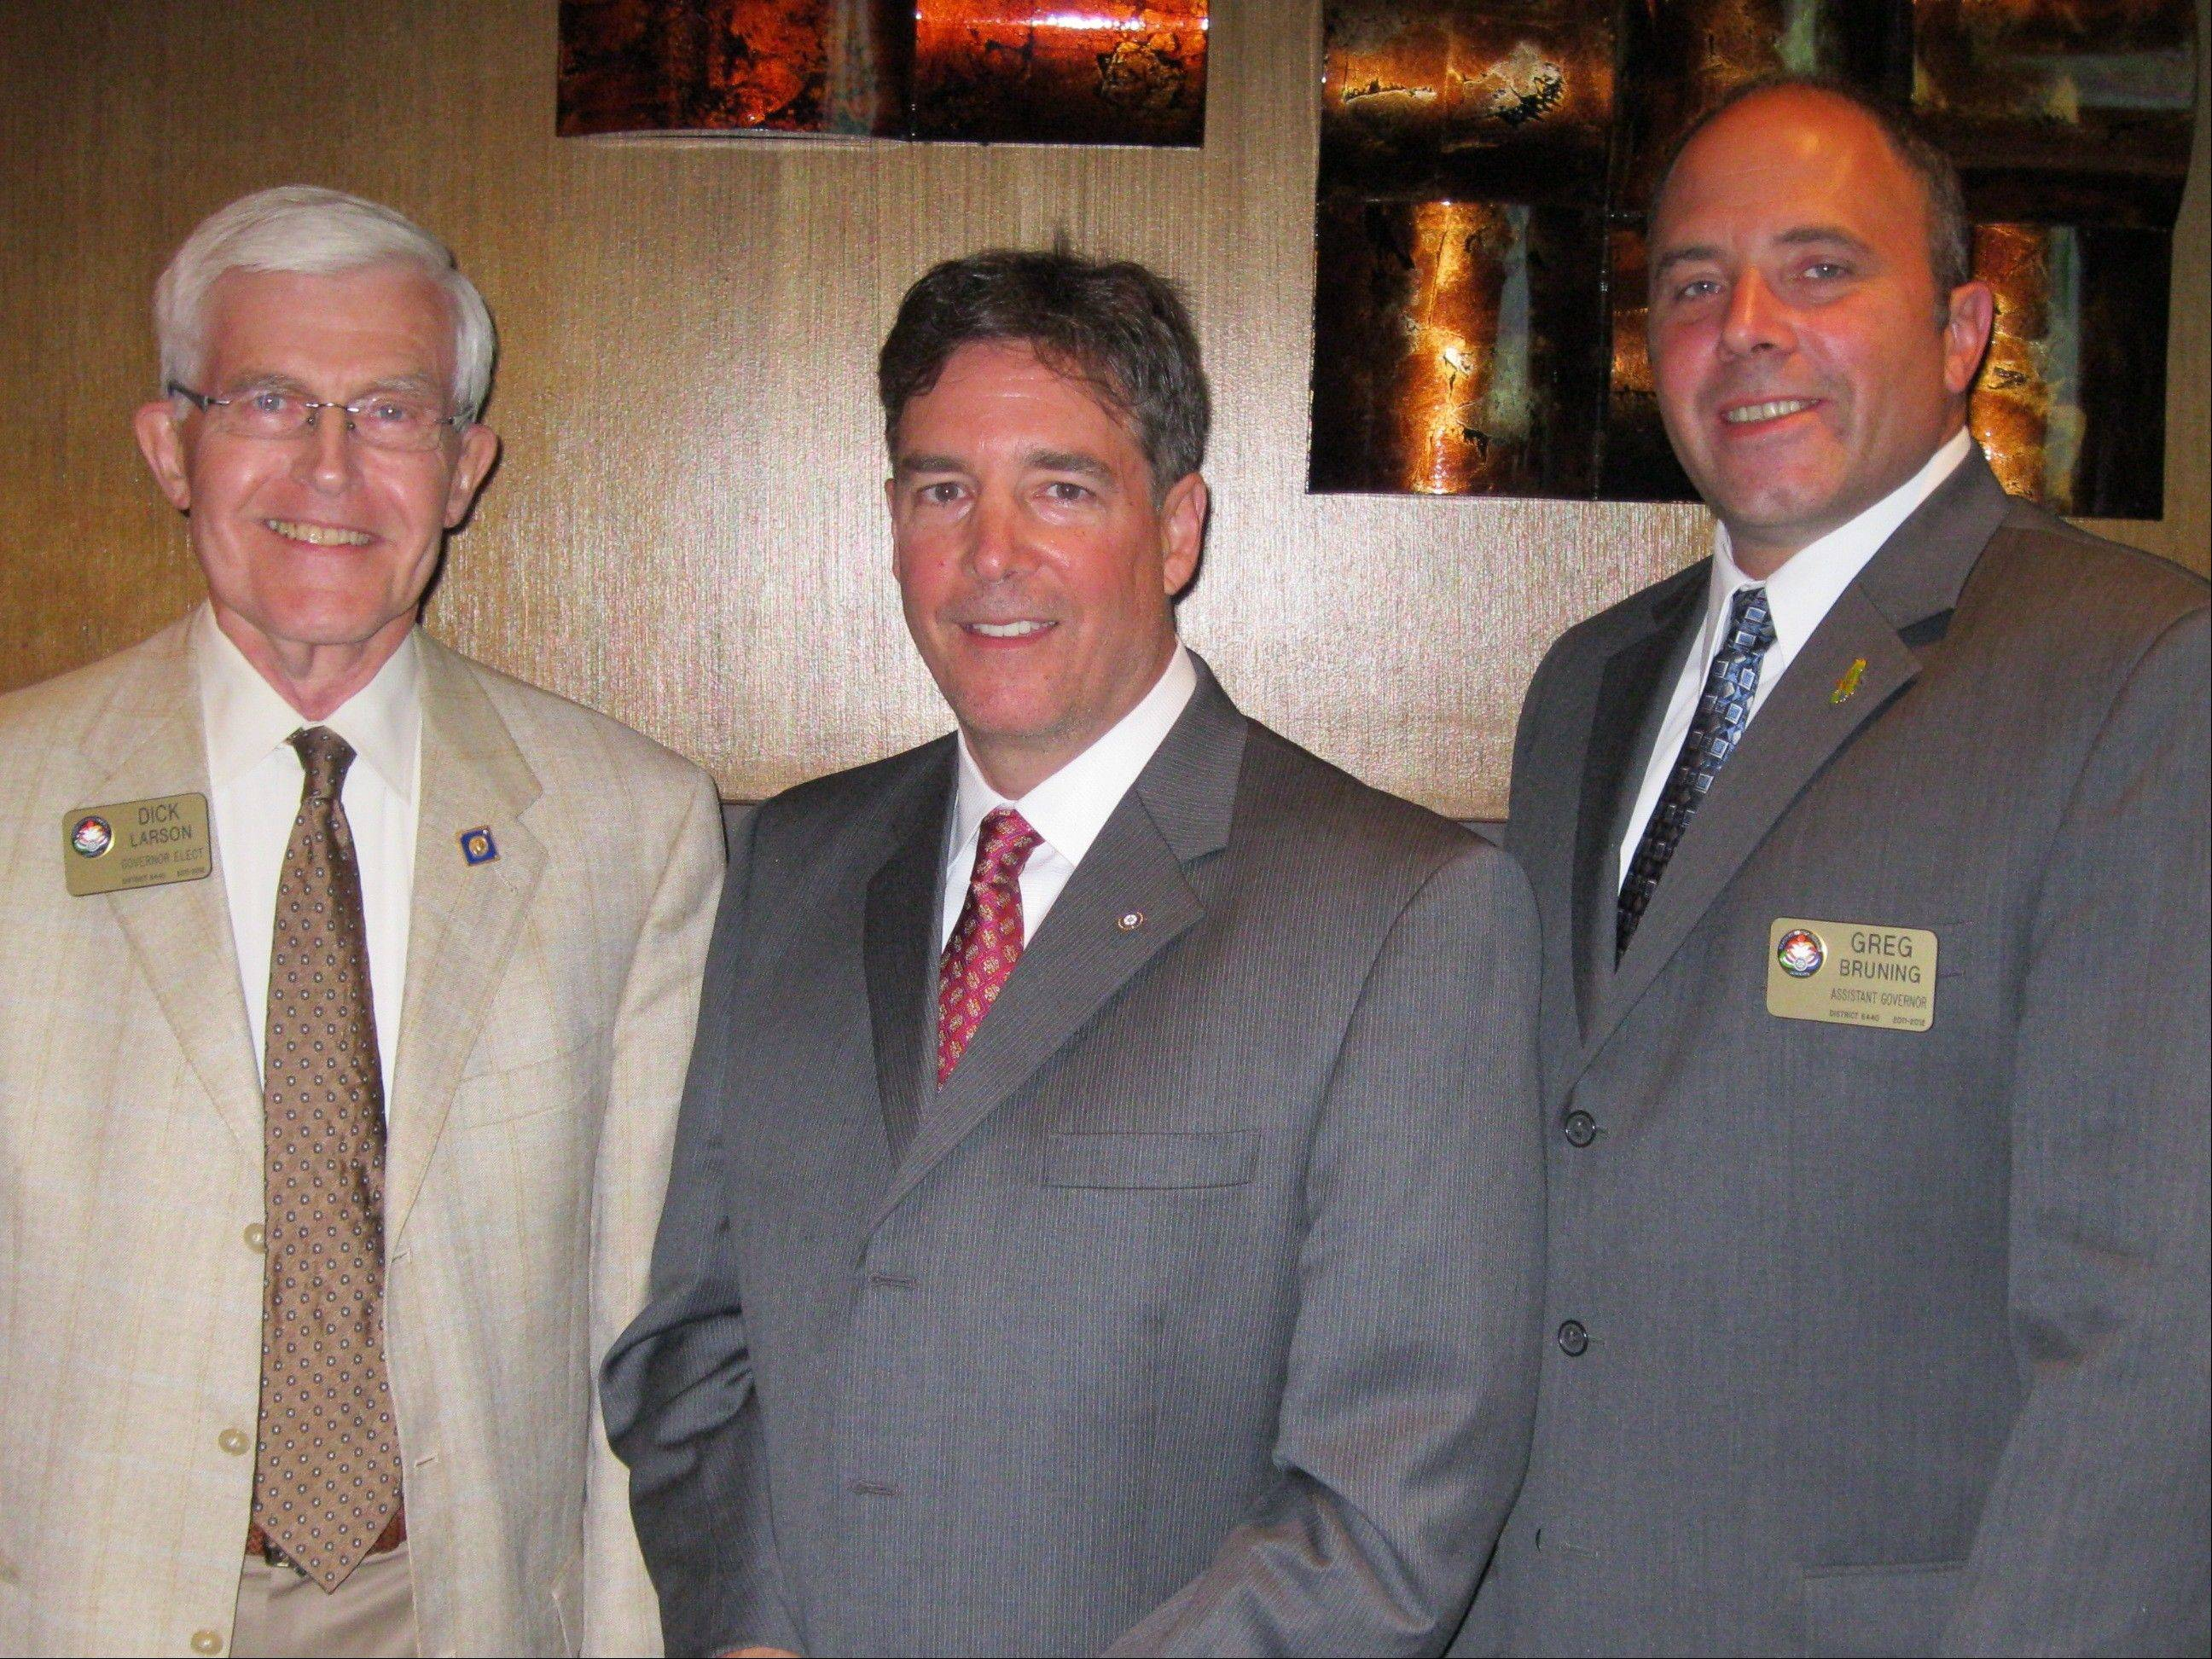 Pictured at the Rotary Club of Schaumburg A.M. Installation & Awards Dinner, from left, are: District 6440 Governor Elect Dick Larson, Schaumburg A.M. Rotary President Jim McKenzie and Assistant Governor Greg Bruning.